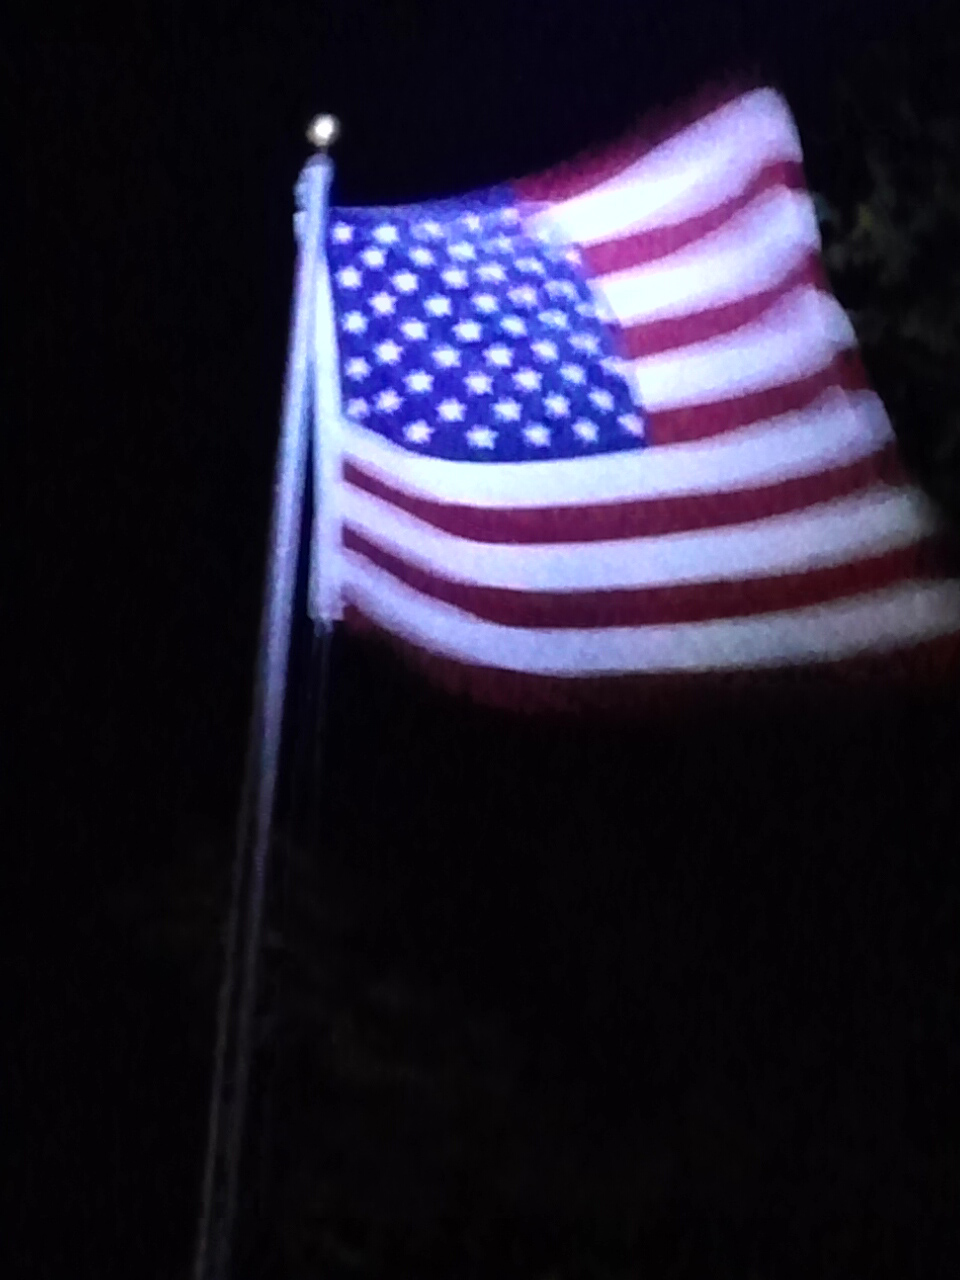 PolePal Extreme illuminating flag at night